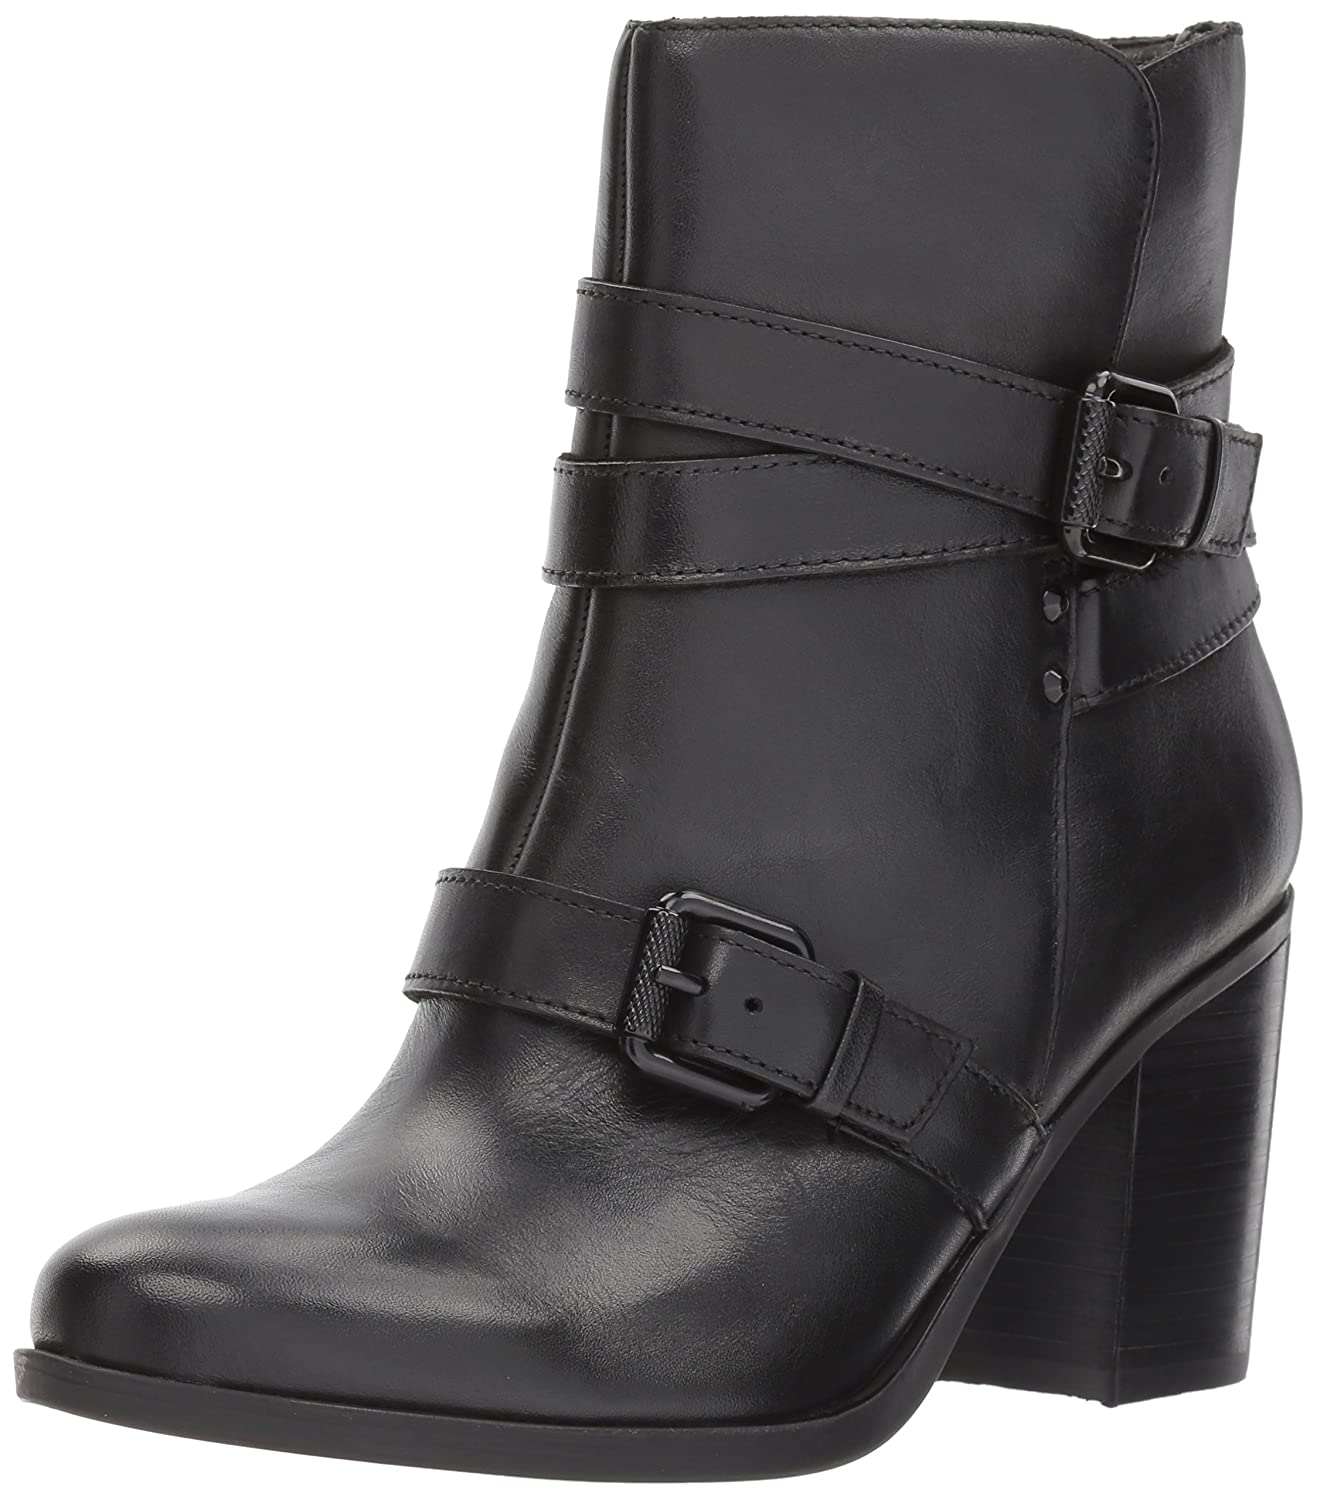 Naturalizer Women's Karlie Harness Boot B06W2LH887 7.5 W US|Black